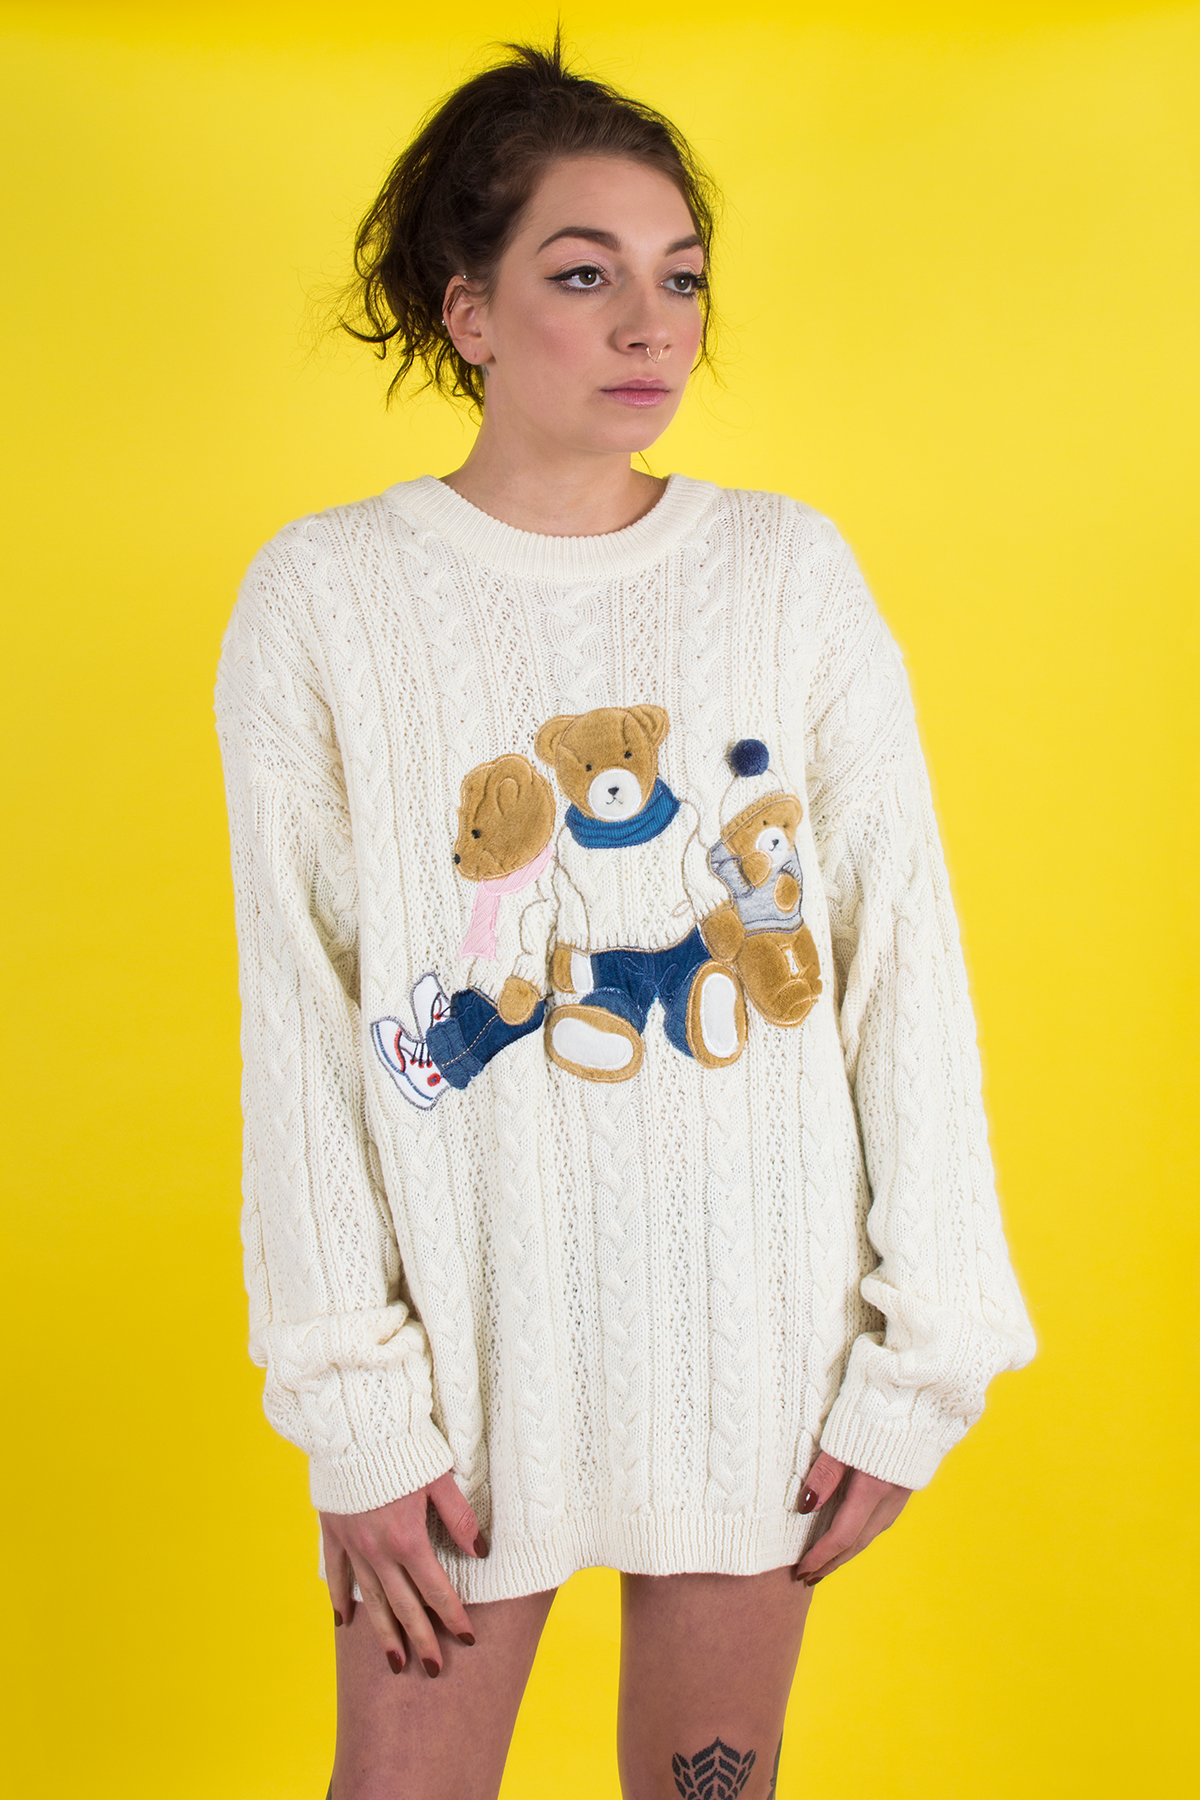 Vintage teddy bear sweater